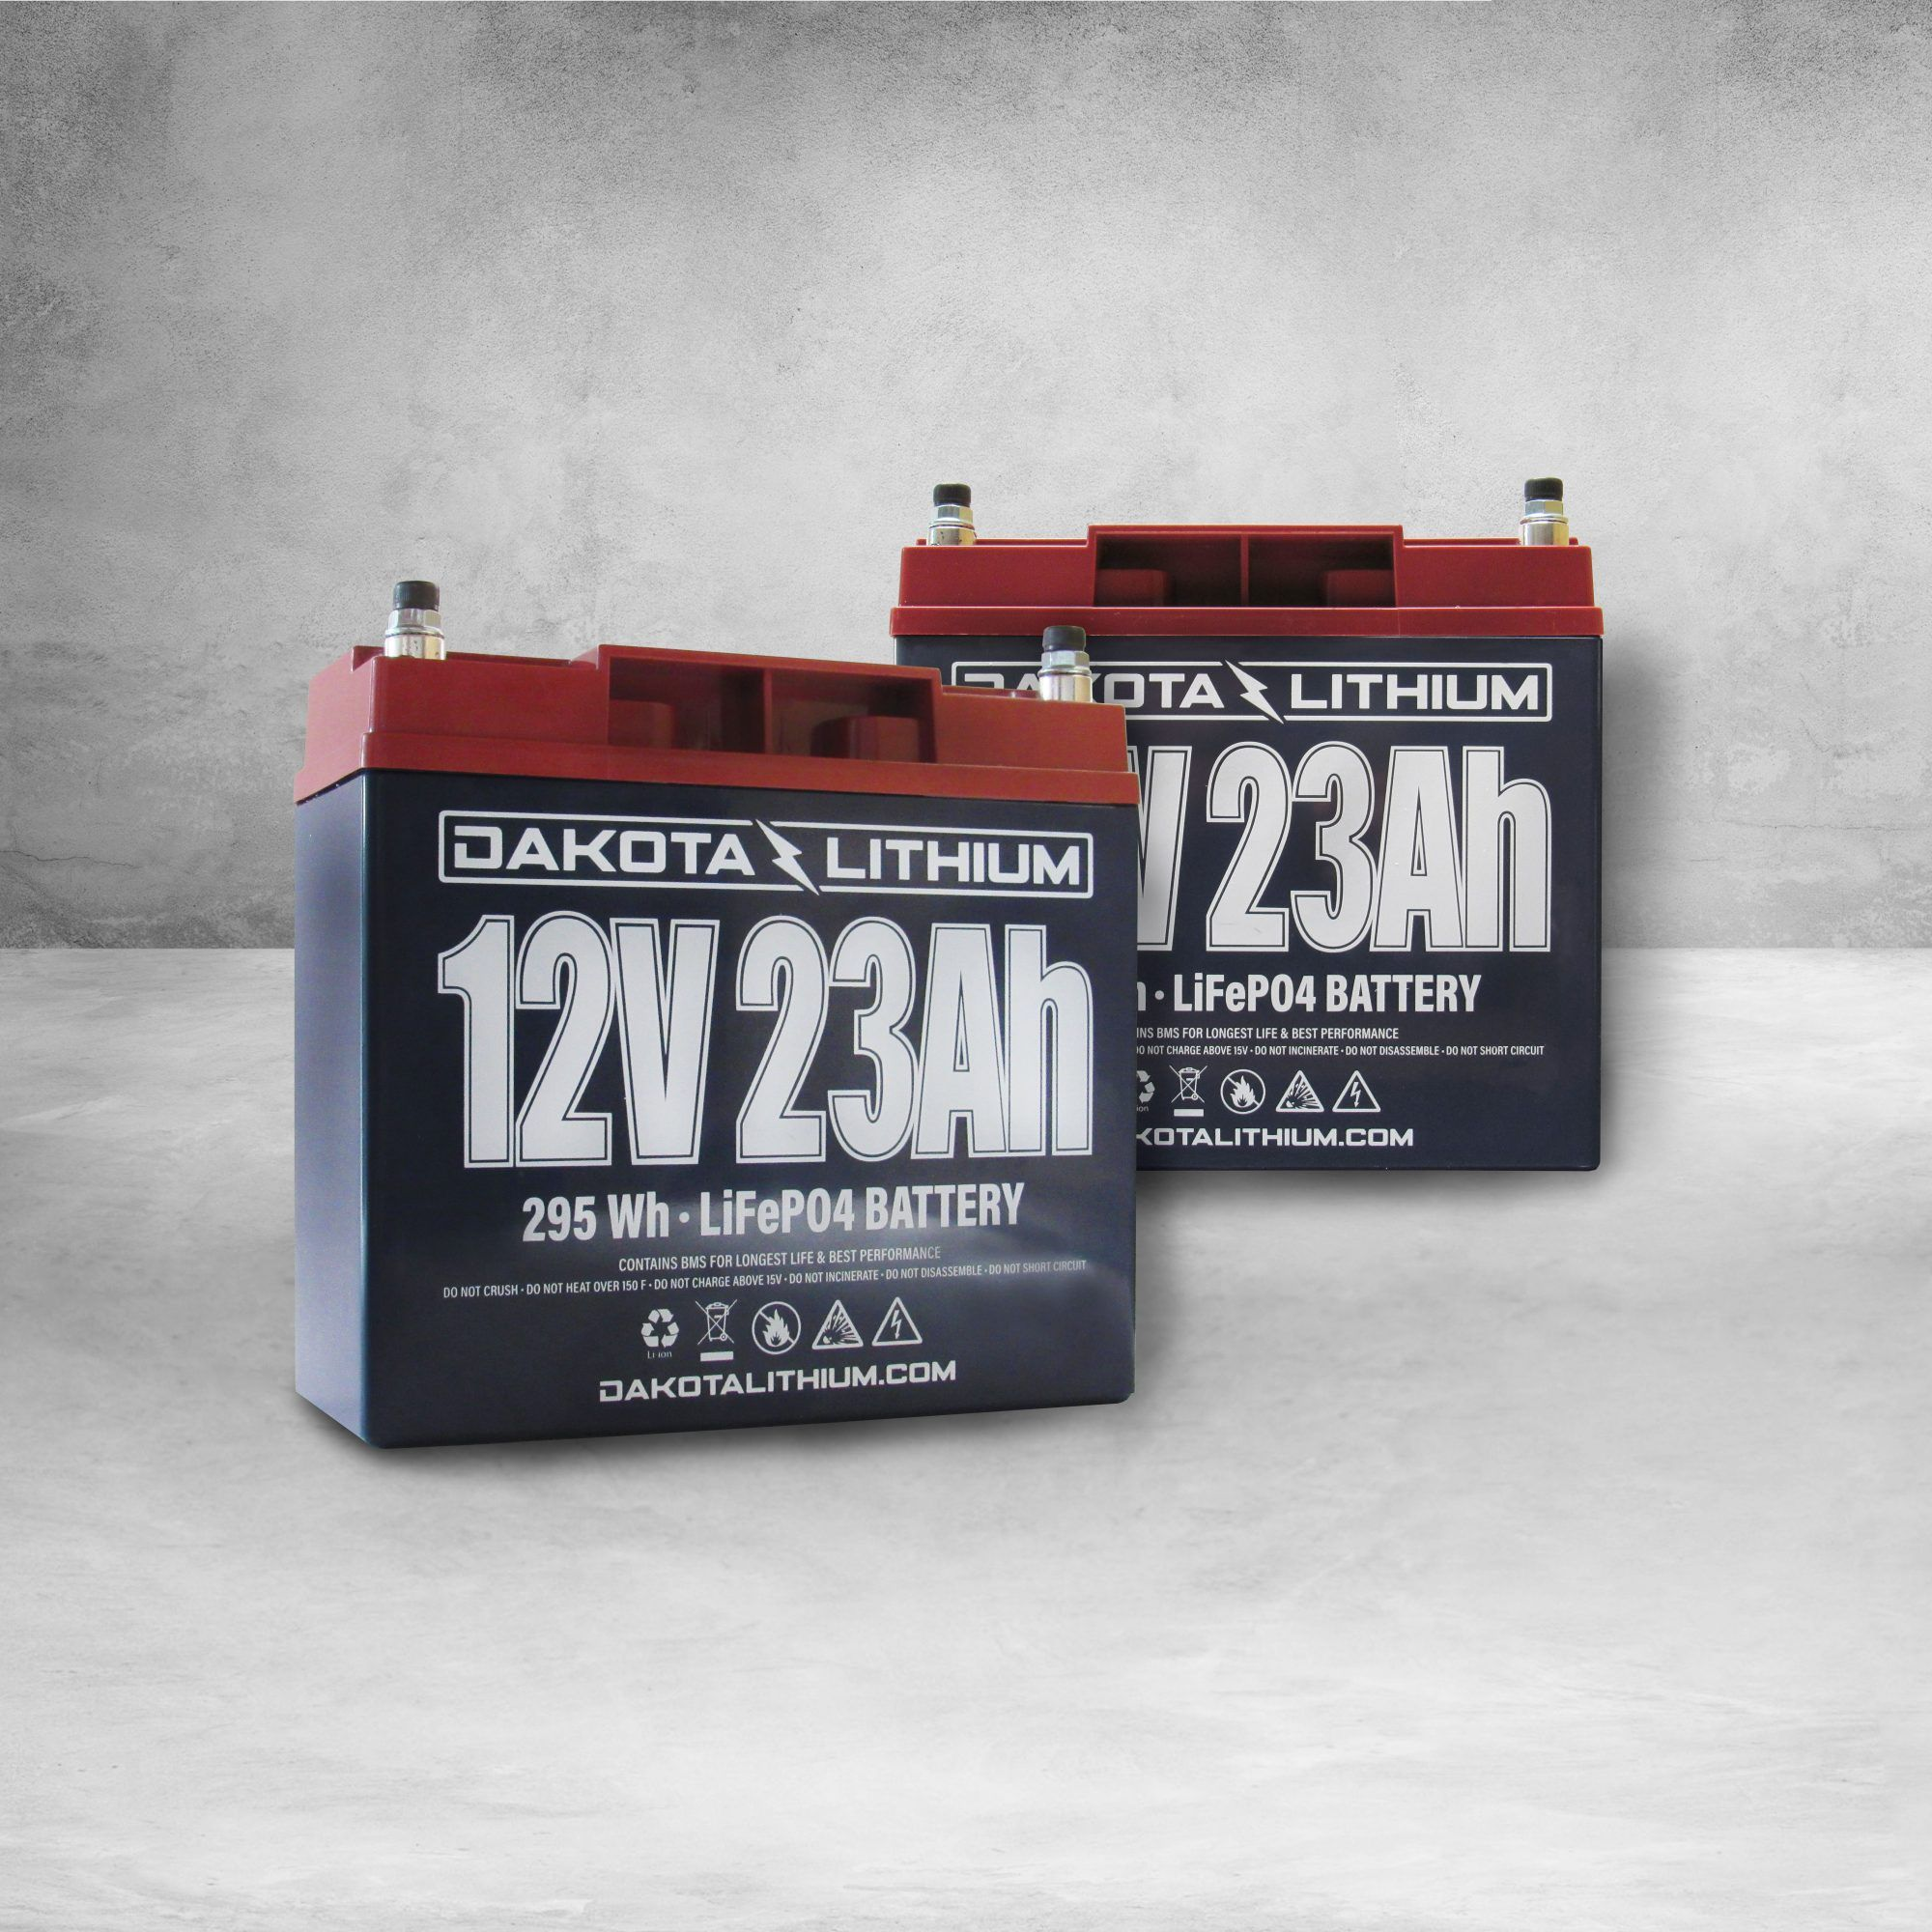 Built Dakota Tough This 12 Volt Lithium Battery Packs A Big Punch Lifespan Of 2 000 Charge Cycles Lasts 5 Times Longer Battery Solar Battery Lithium Battery